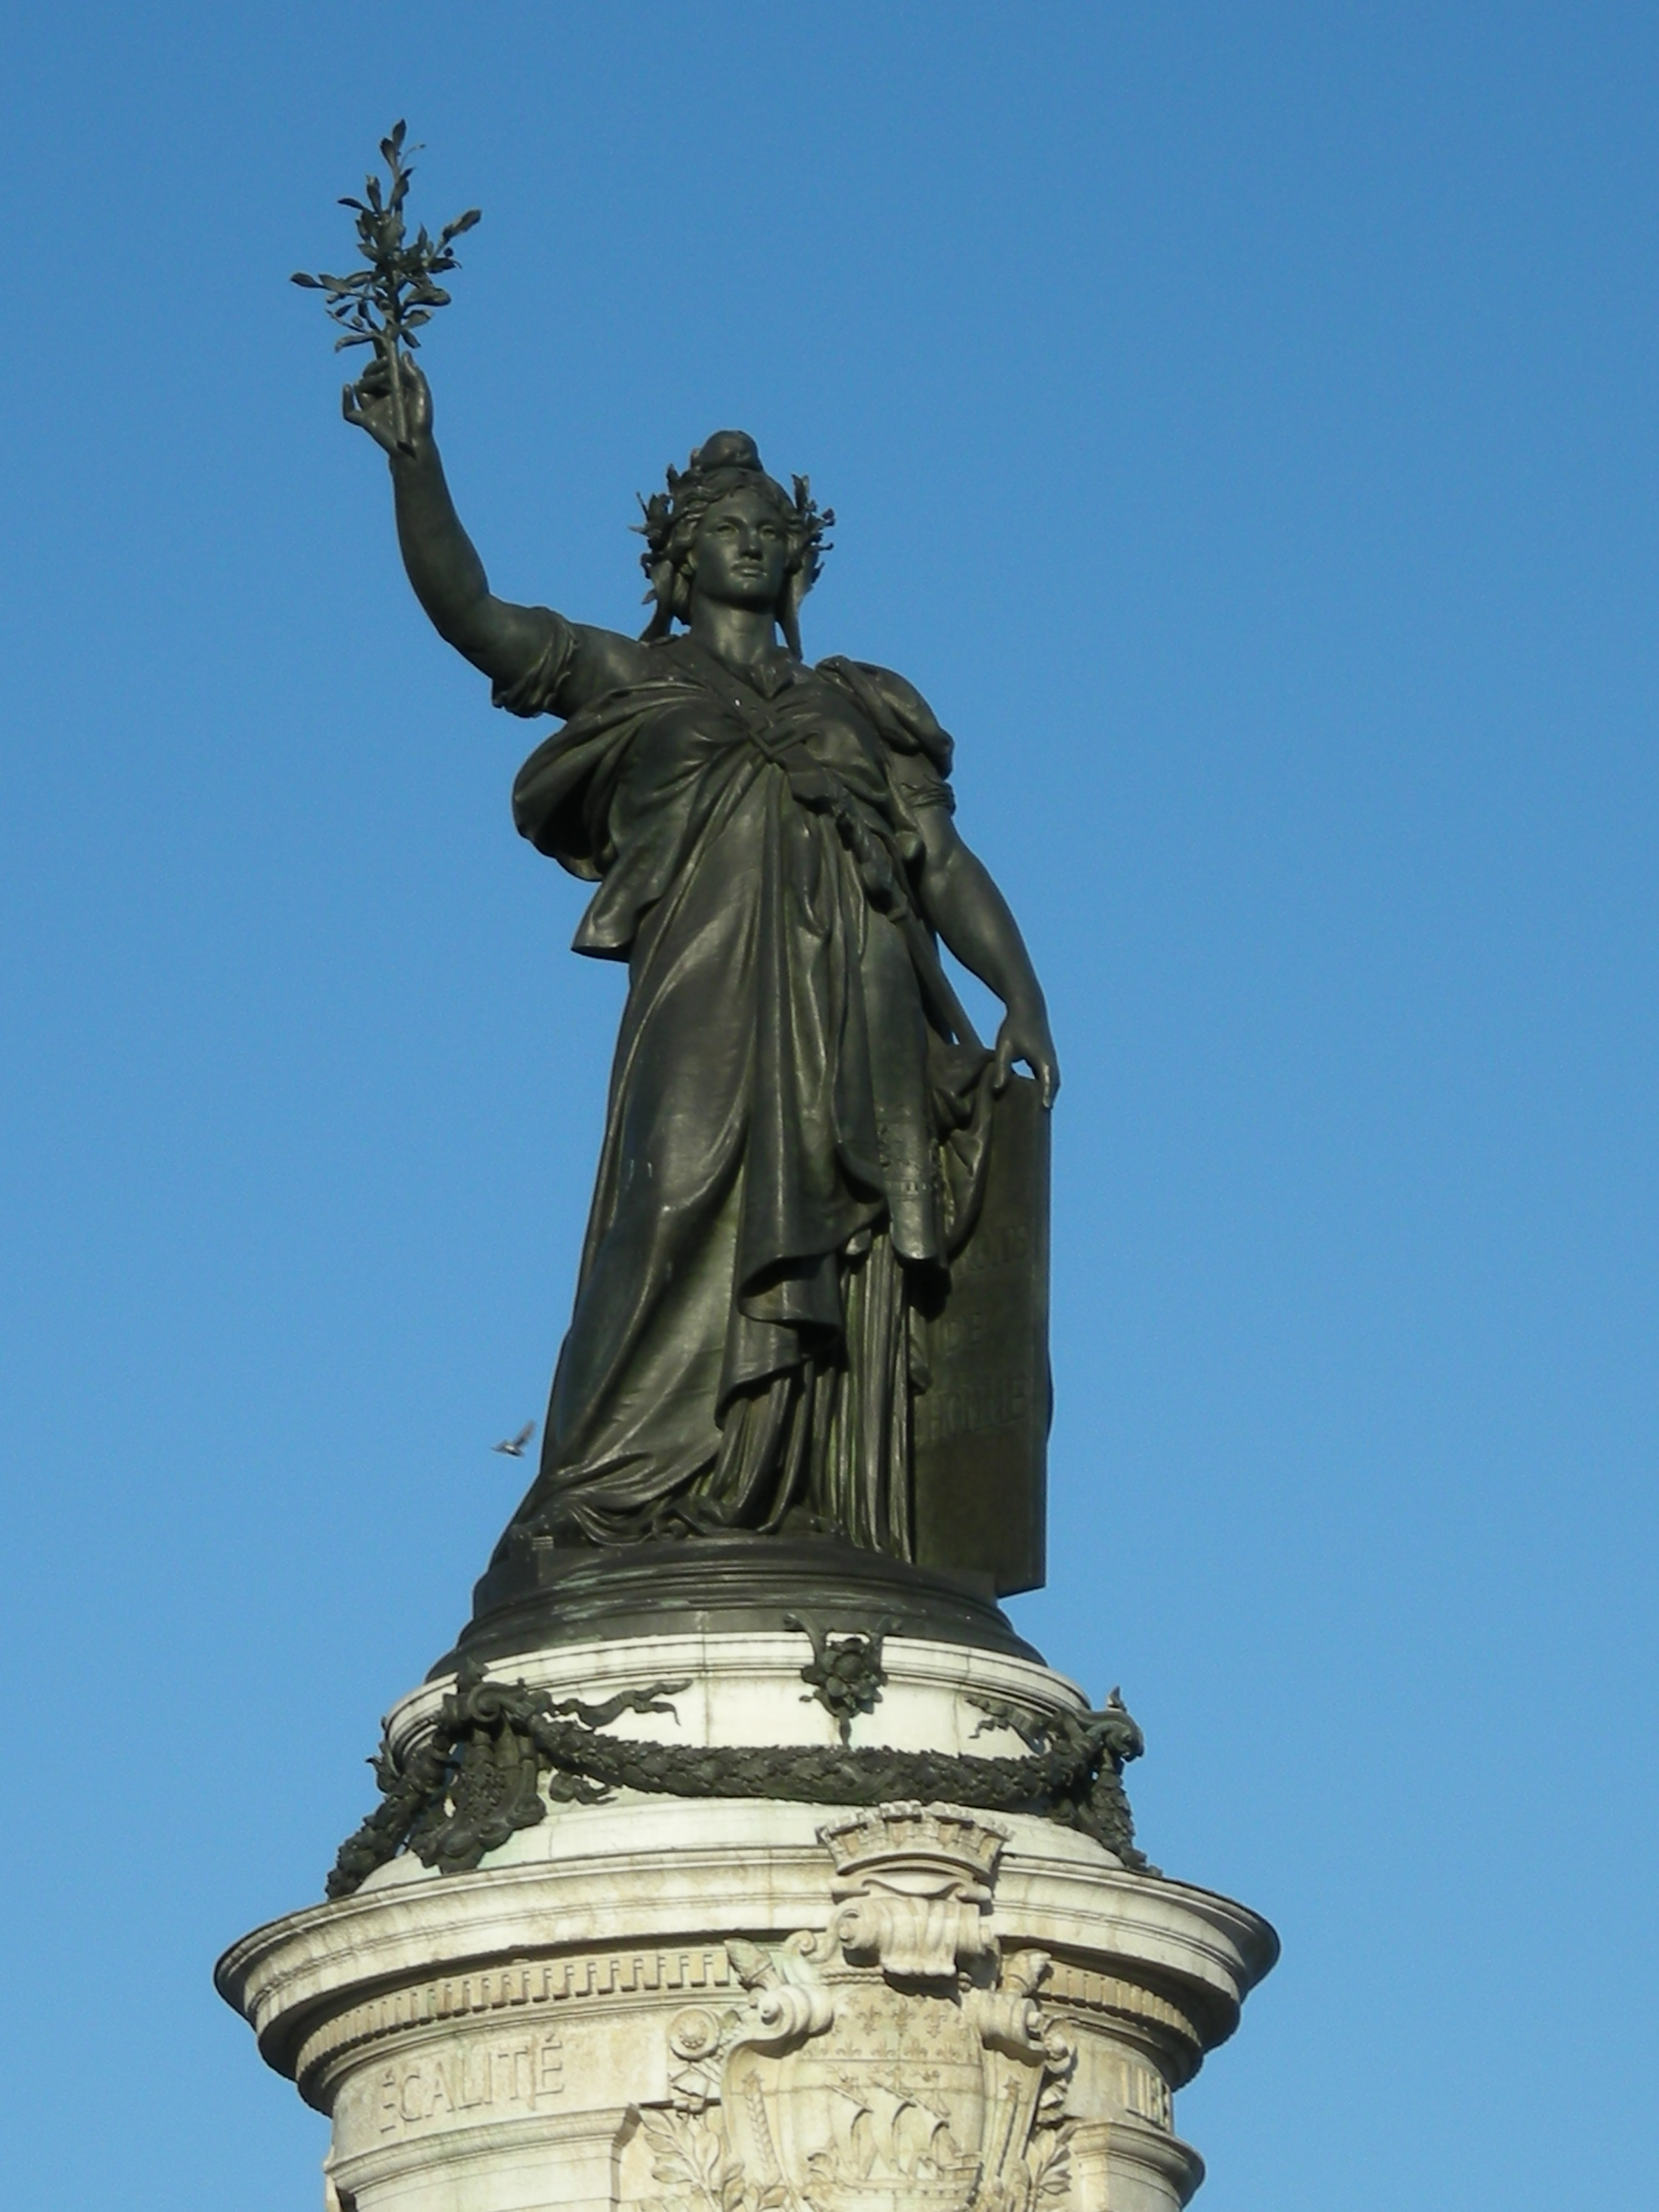 60 Pictures Of Famous Statues In The World